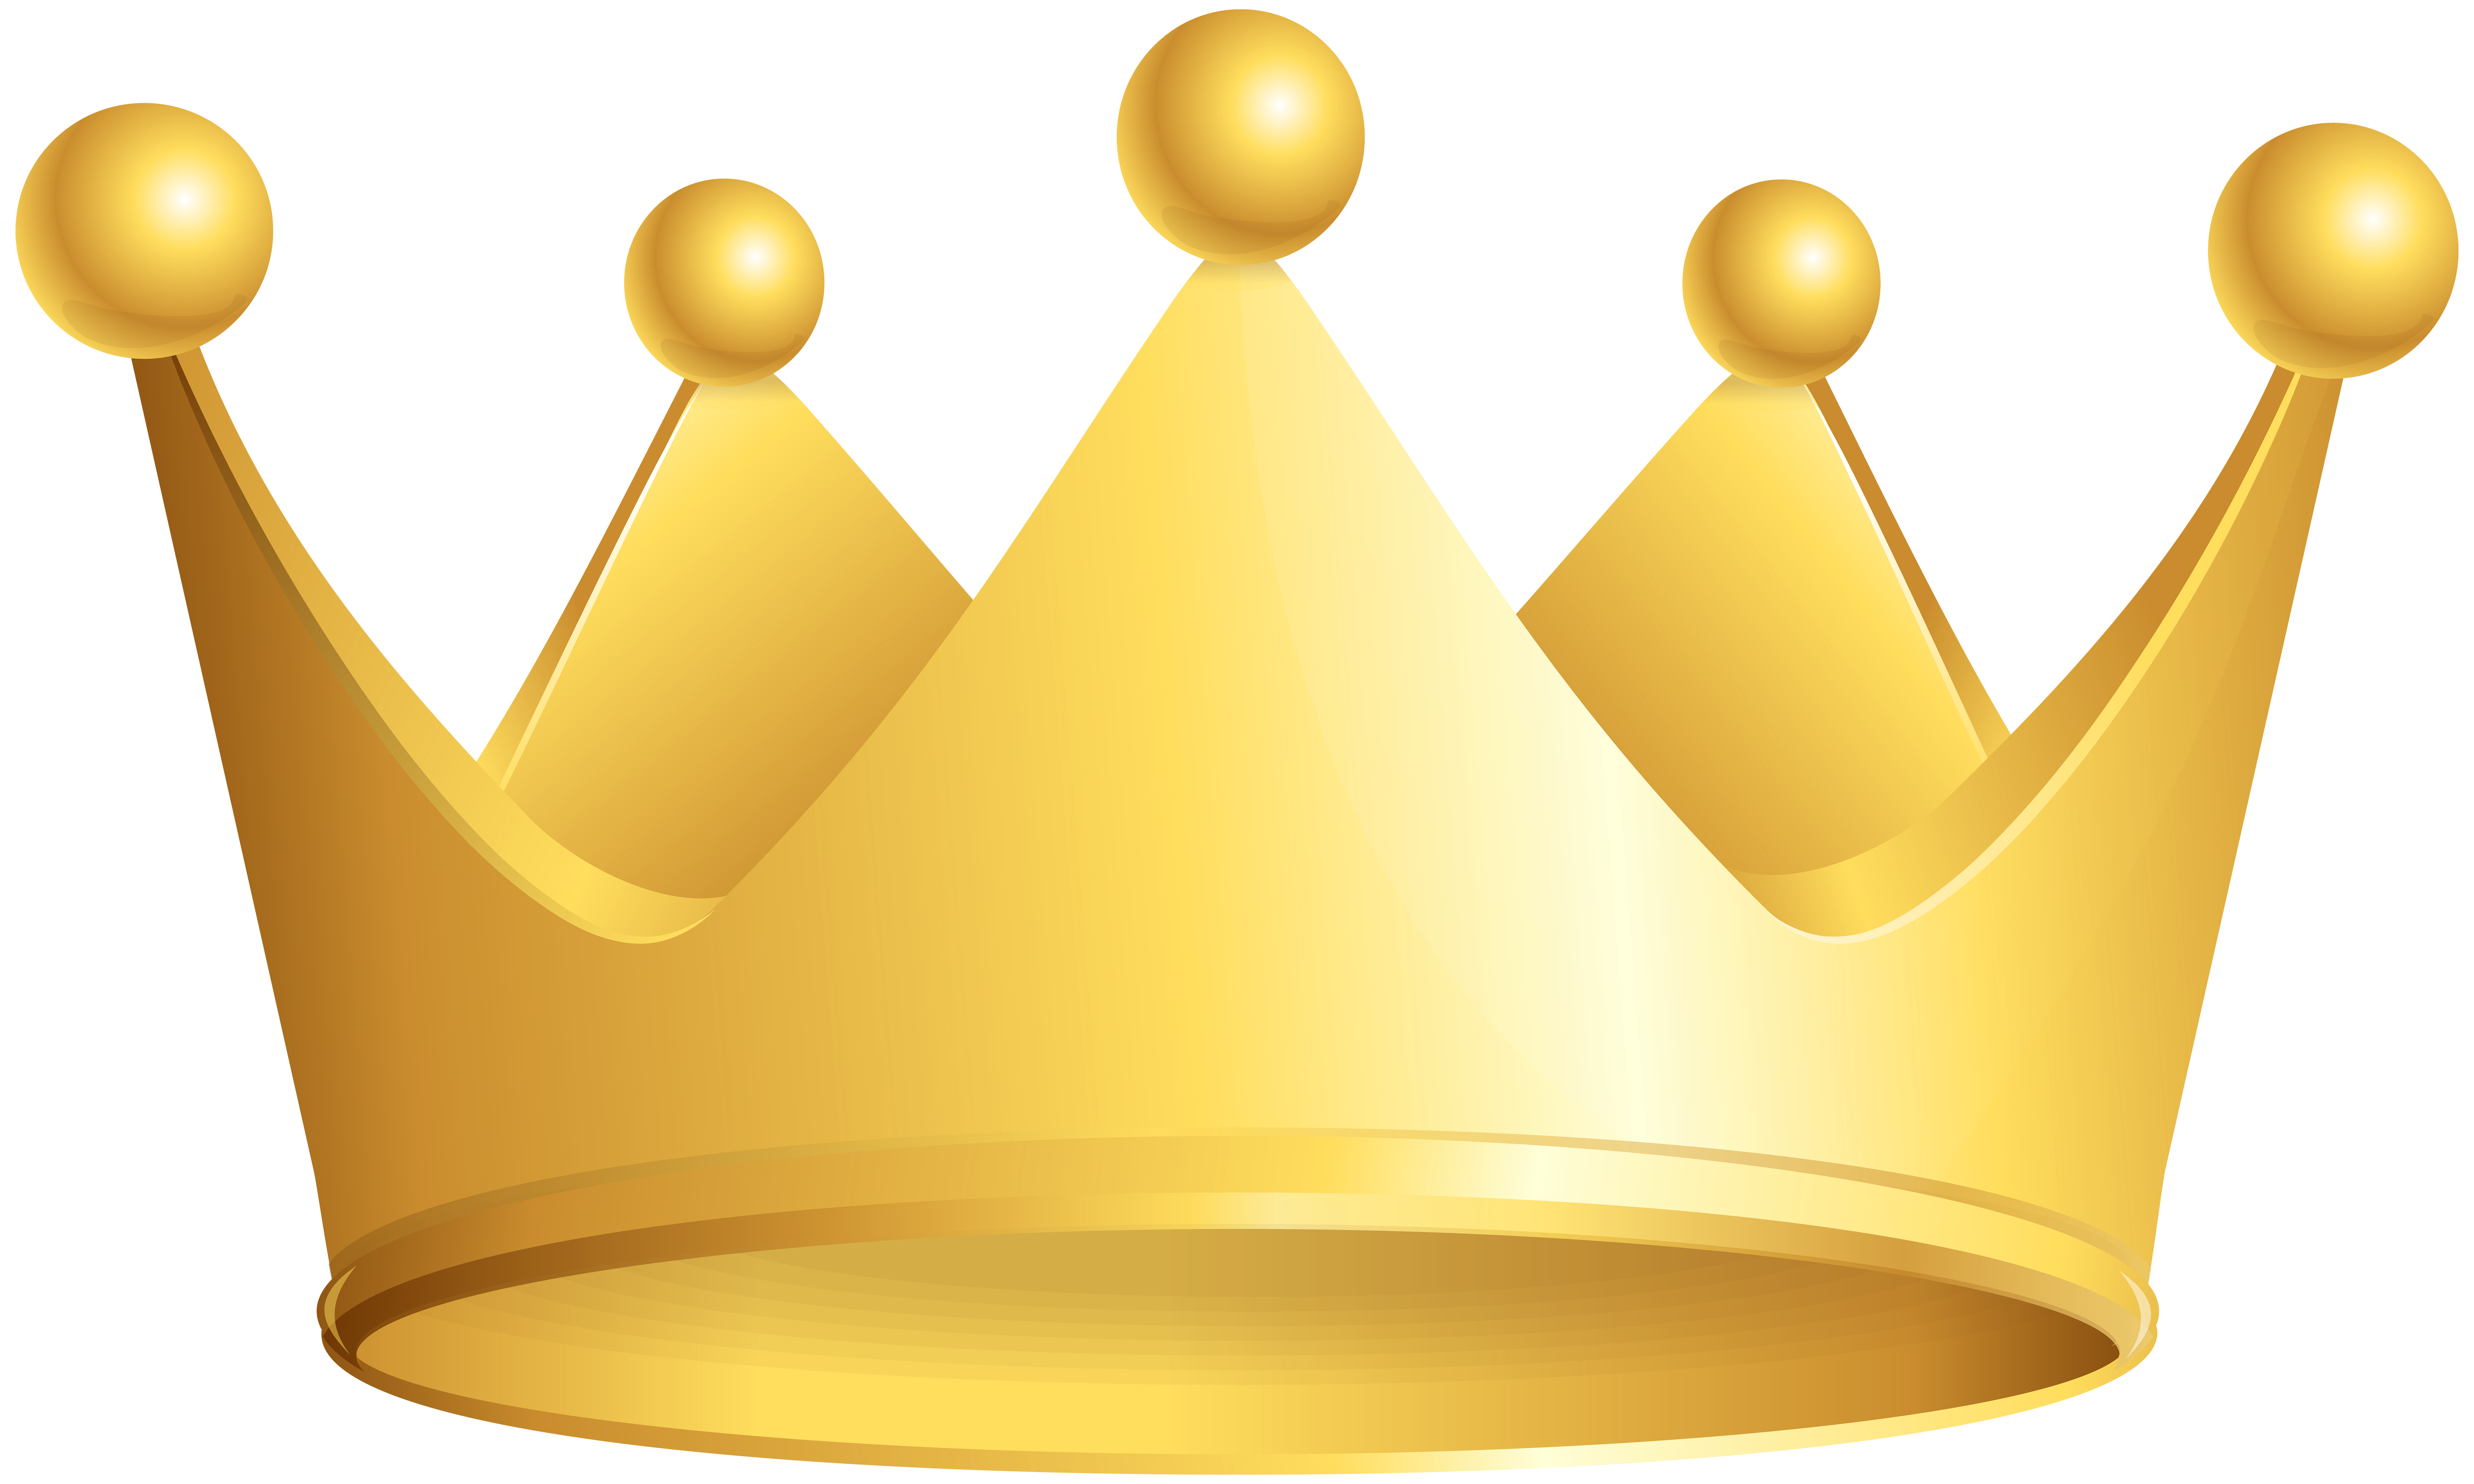 Crown Clip Art Png Image Gallery Yopriceville High Quality Images And Transparent Png Free Clipart Crown Clip Art Clip Art Free Clip Art